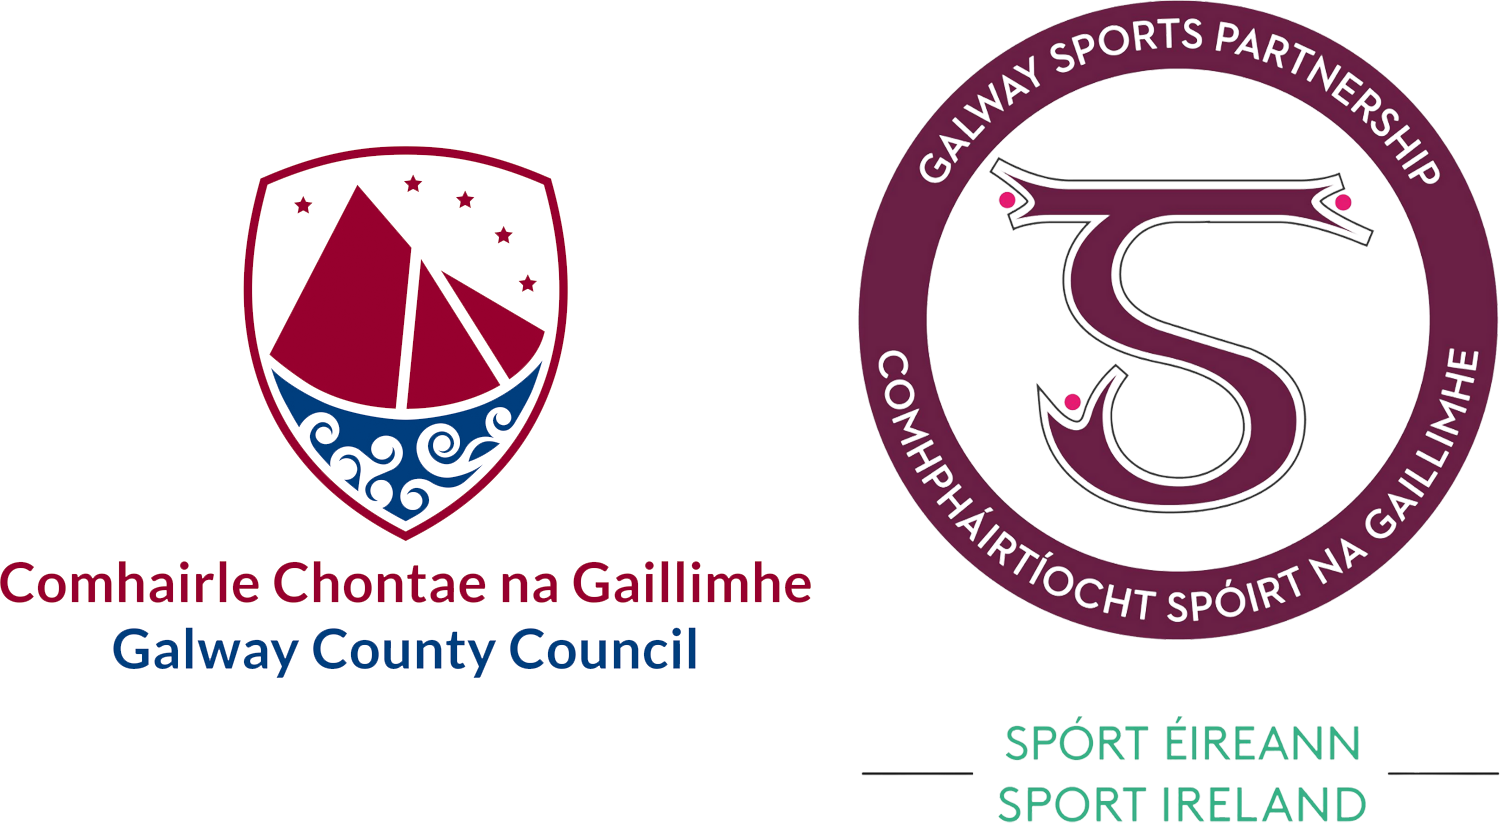 Galway County logo